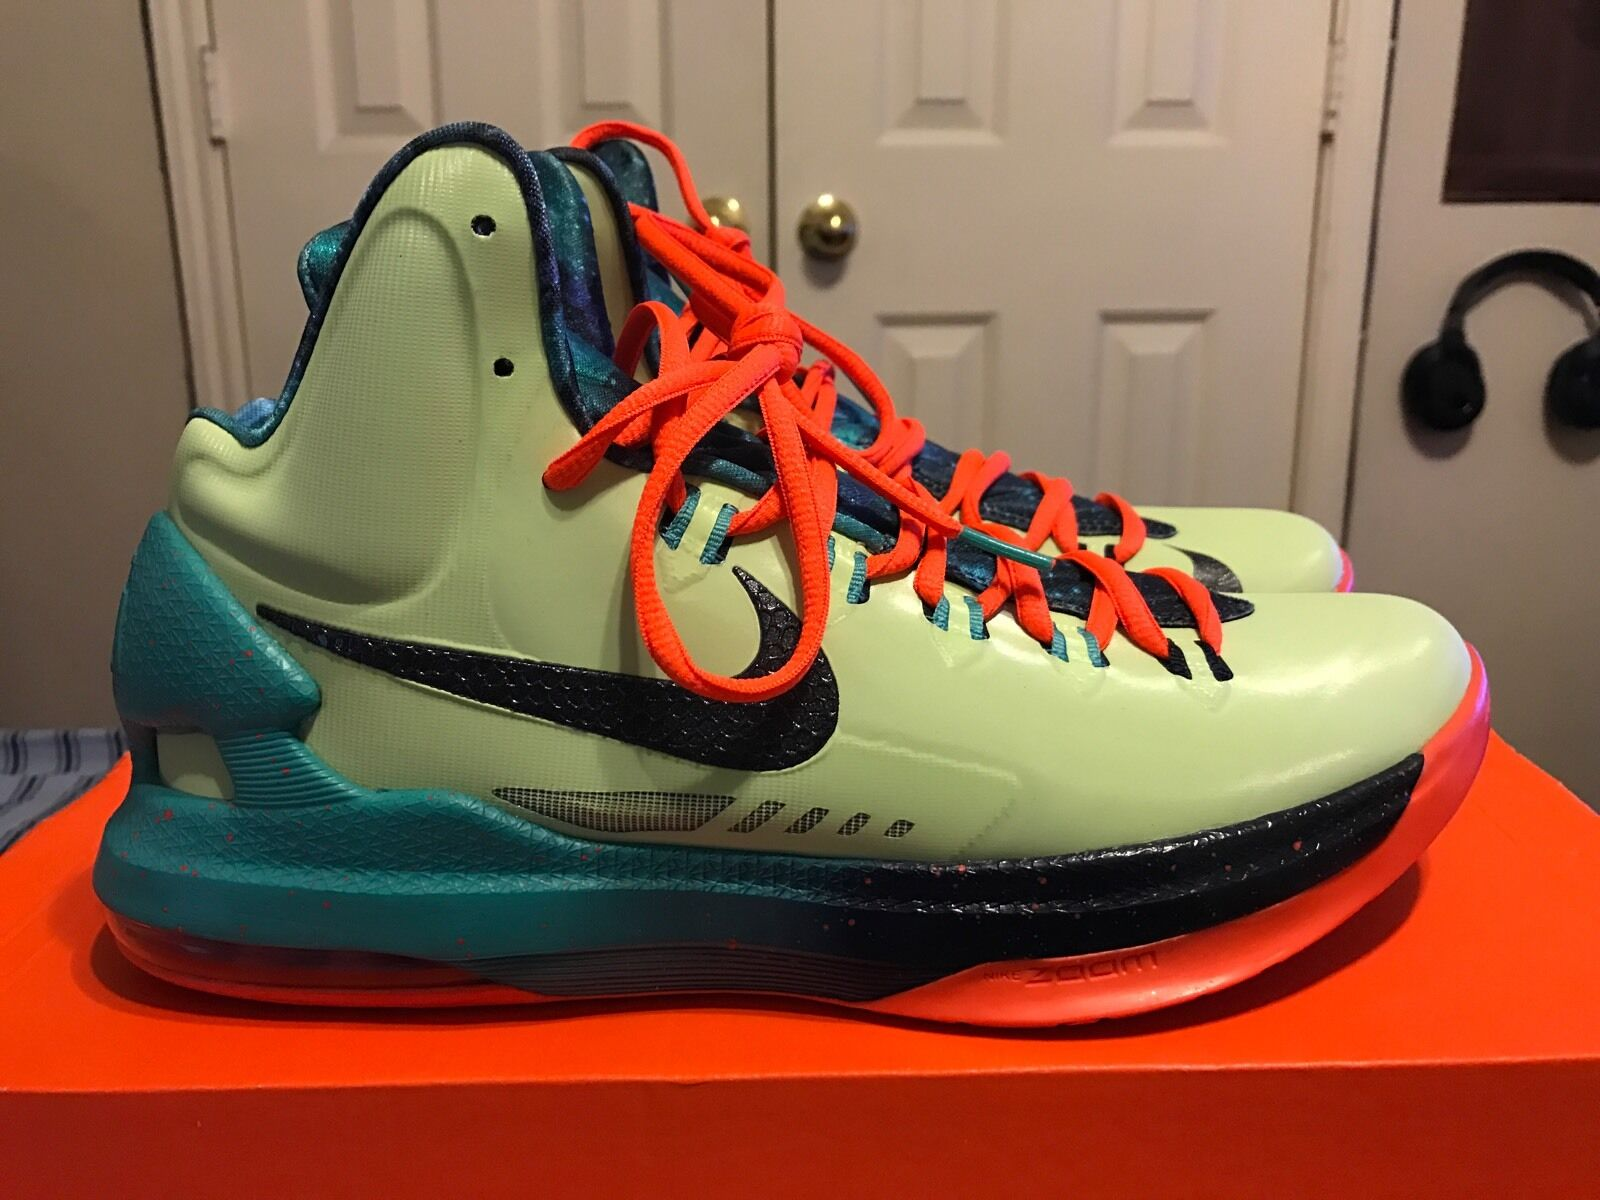 a953aec5893a reduced nike kd 9.5 5 all star area 72 size 9.5 kd 327114 a4f1f a51fd